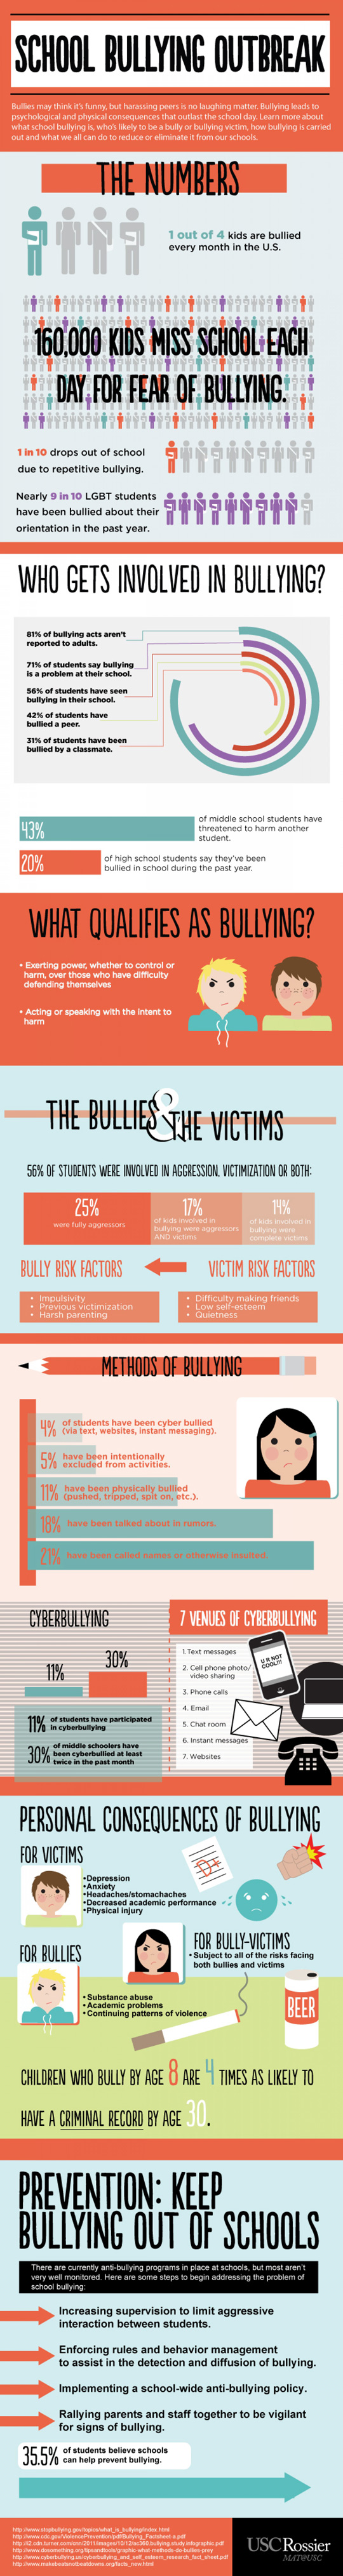 school--bullying-outbreak-web